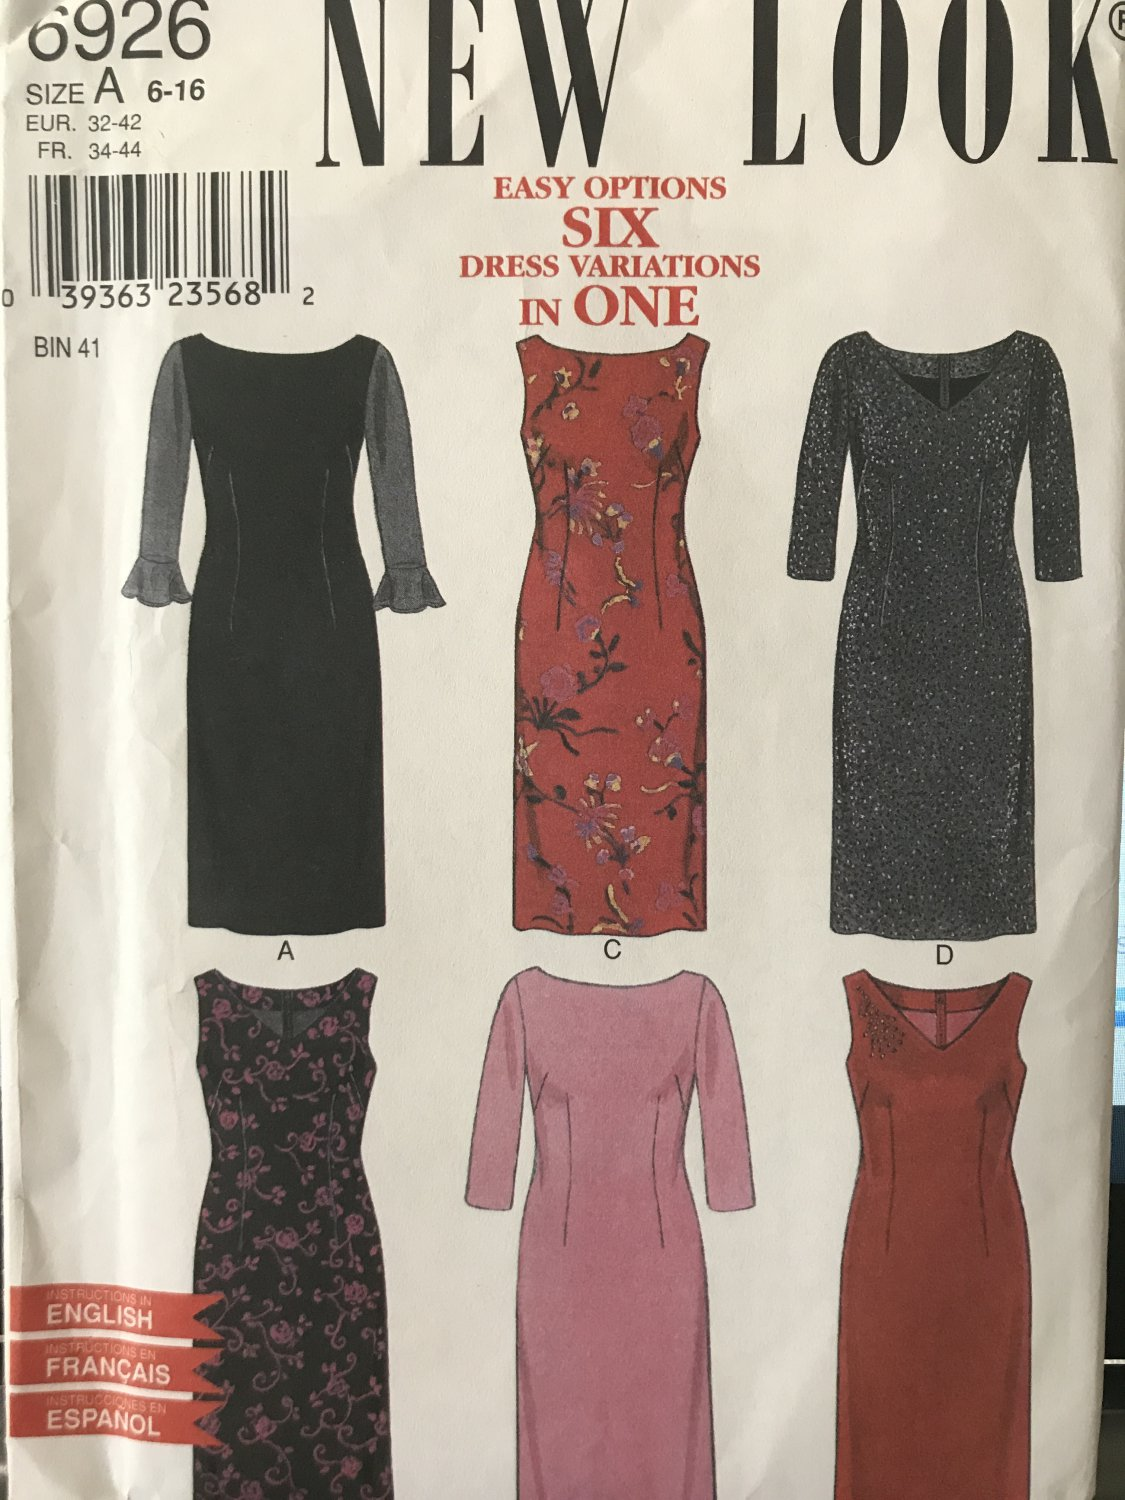 New Look 6926 Misses Dress with sleeve variations Size 6 - 16 sewing pattern